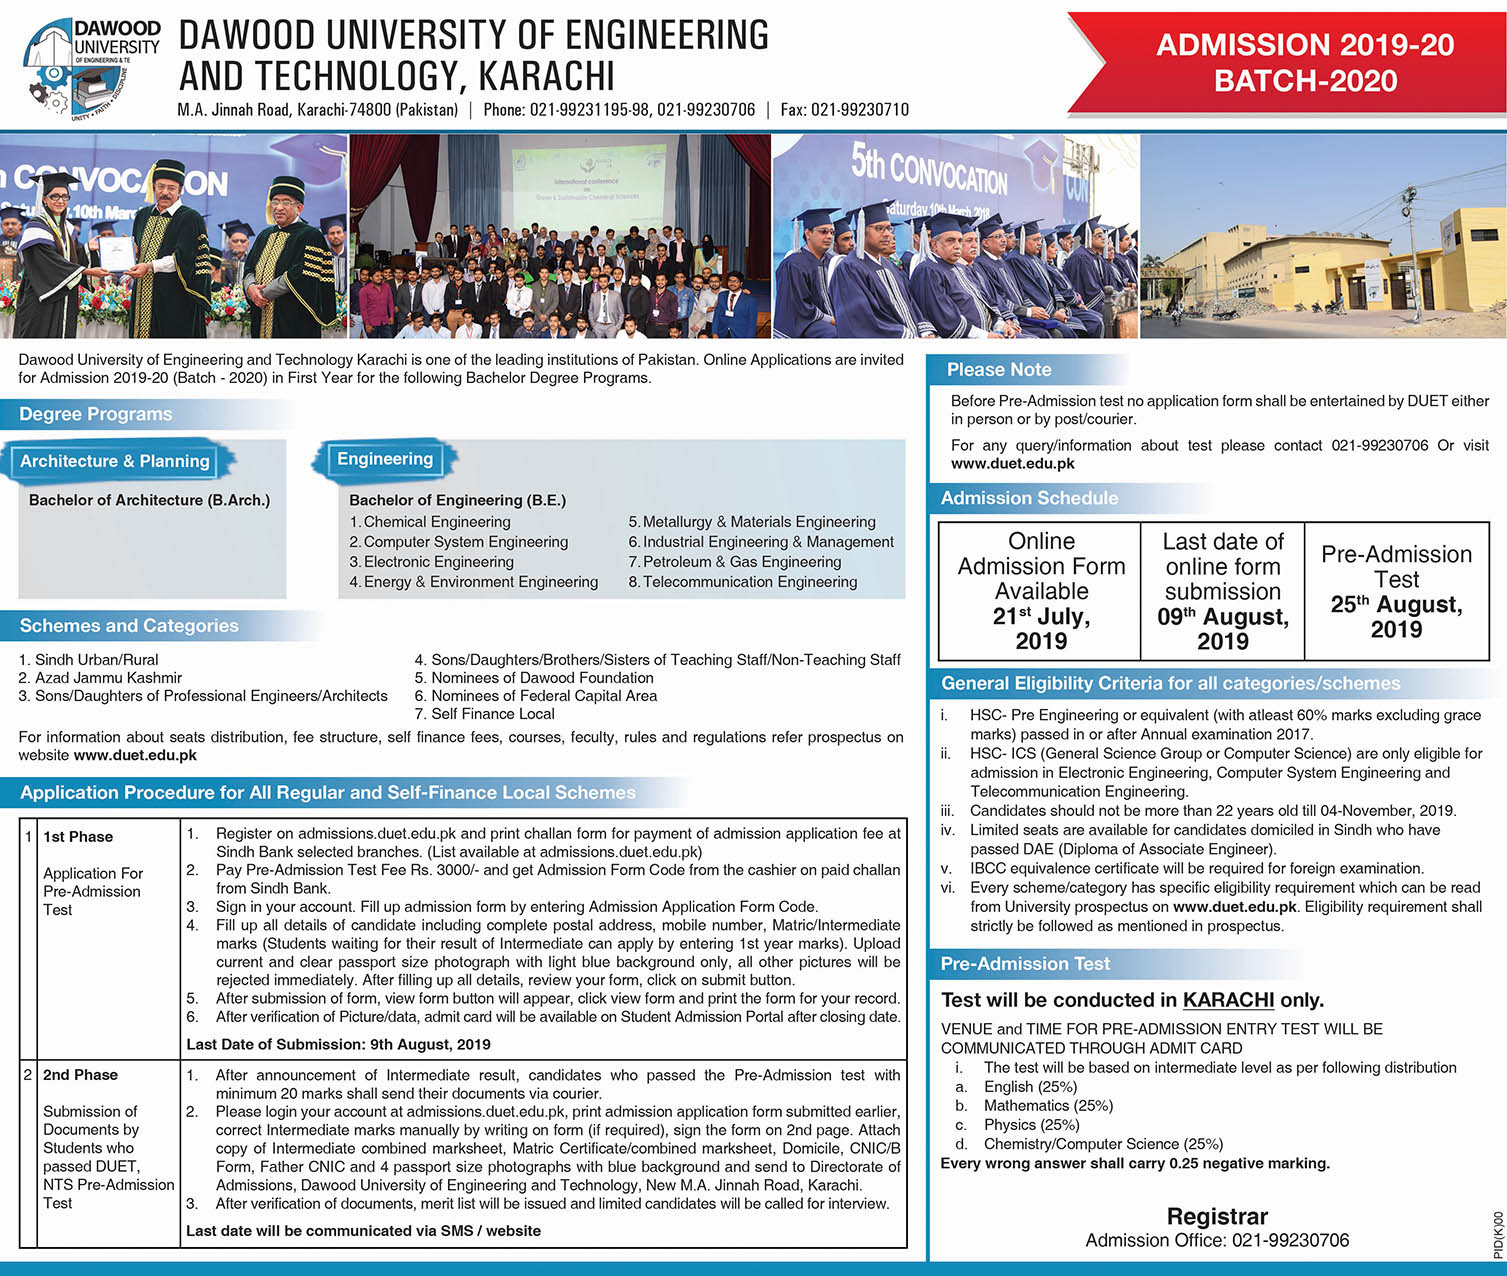 Dawood University of Engineering & Technology Karachi Admission 2019 Registration online